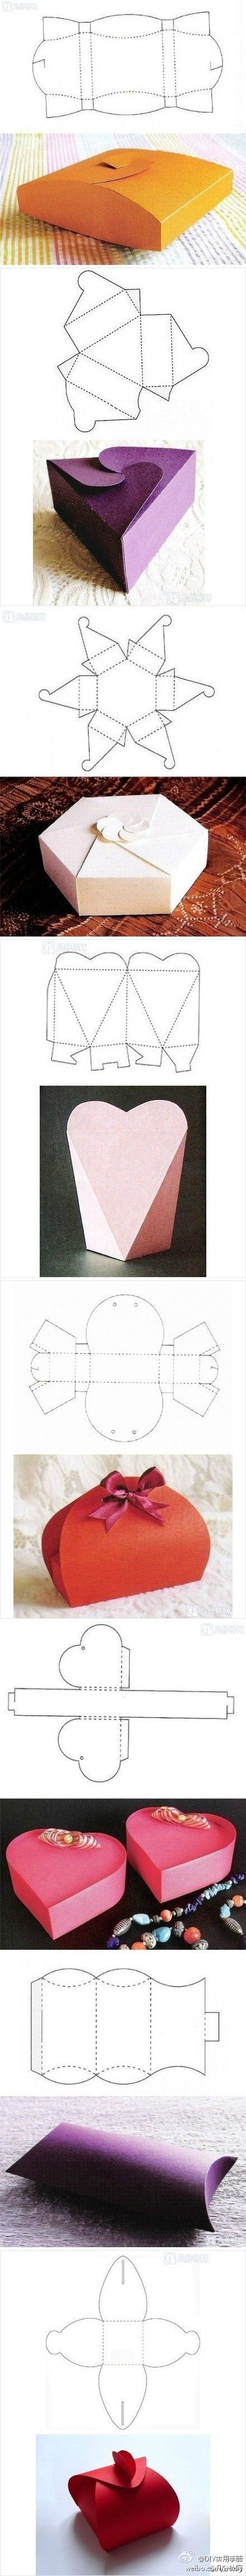 Small box templates DIY